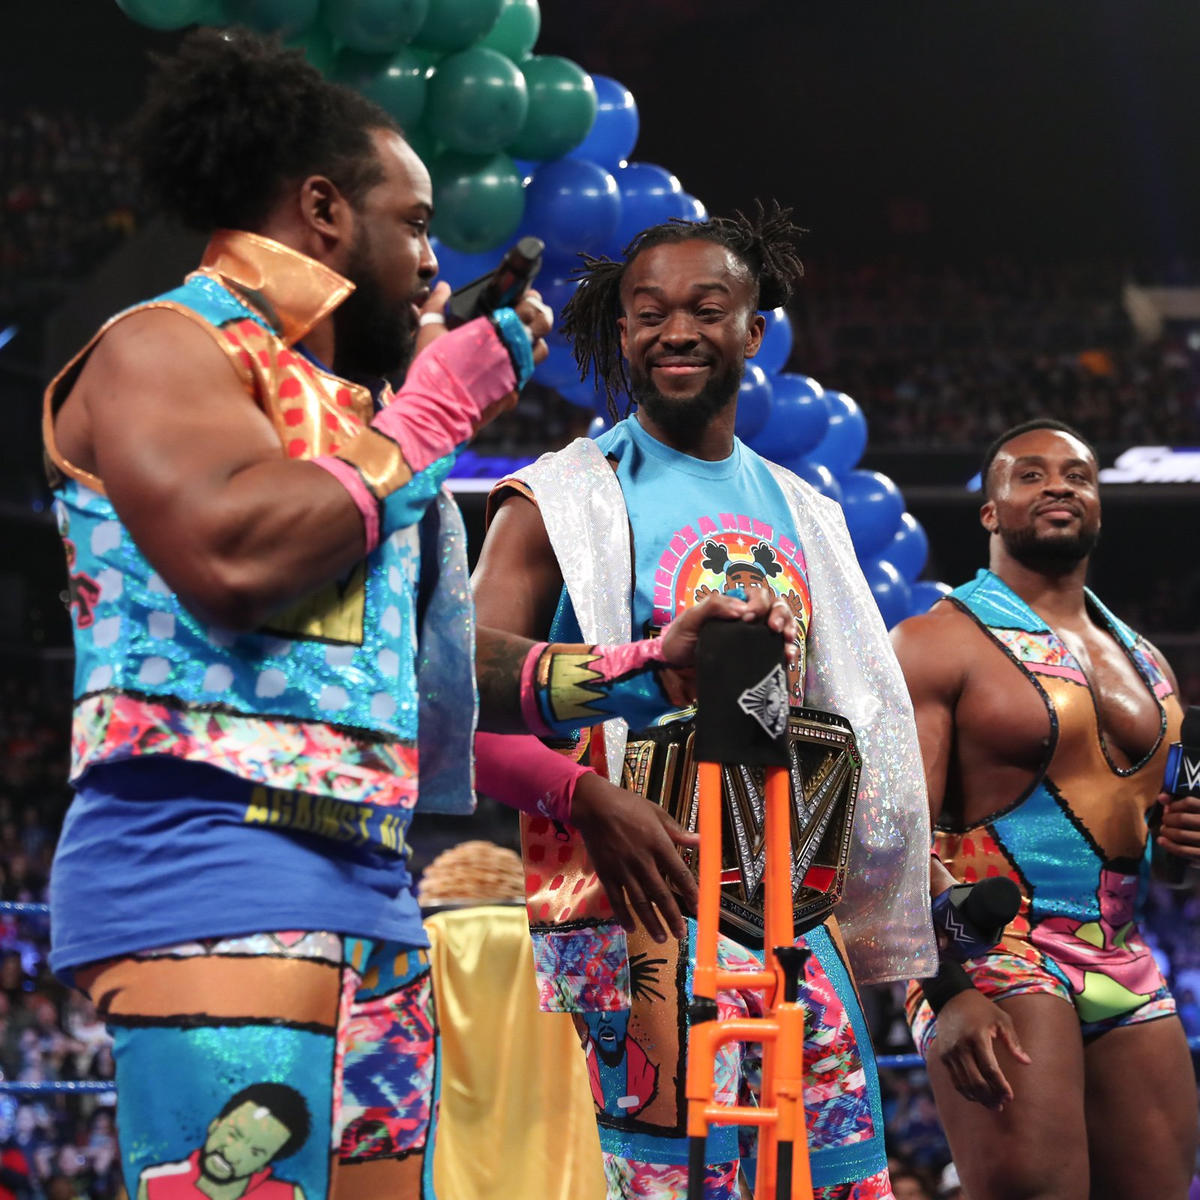 Xavier Woods says it was like meeting one of his heroes when he met Kofi.